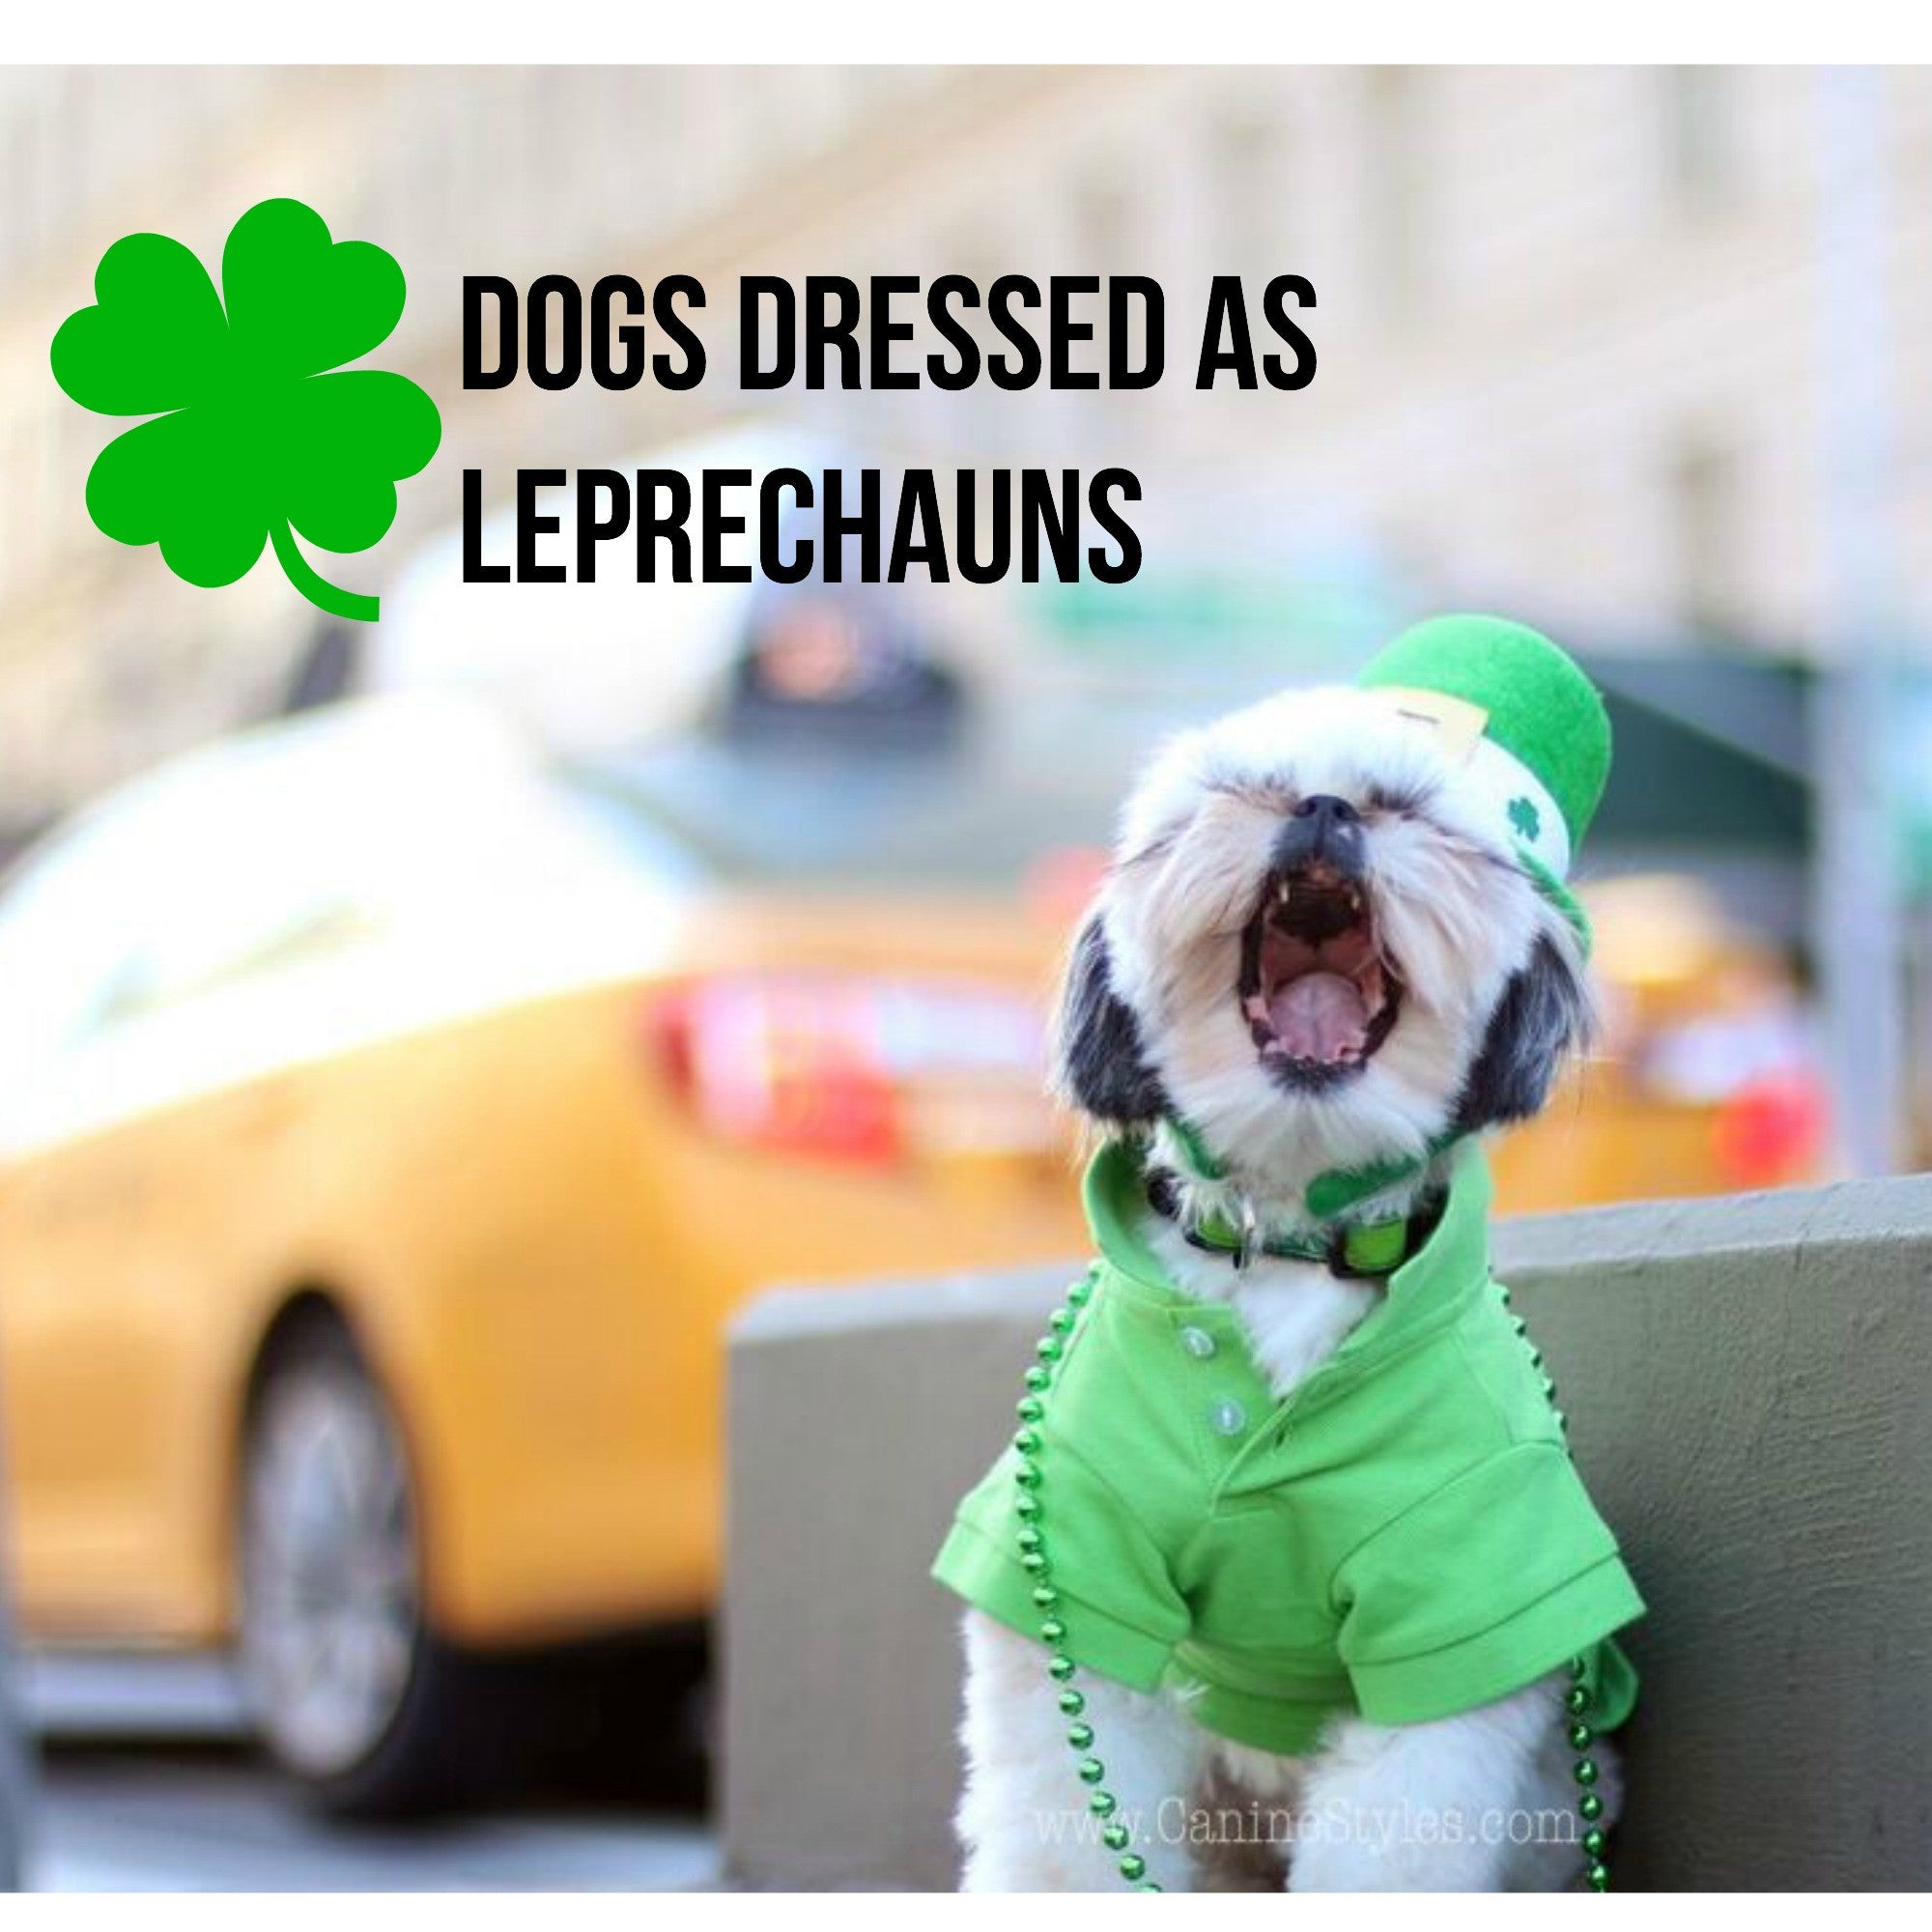 These Dogs are Dressed As Leprechauns And You won't believe the Cuteness!! Wow!